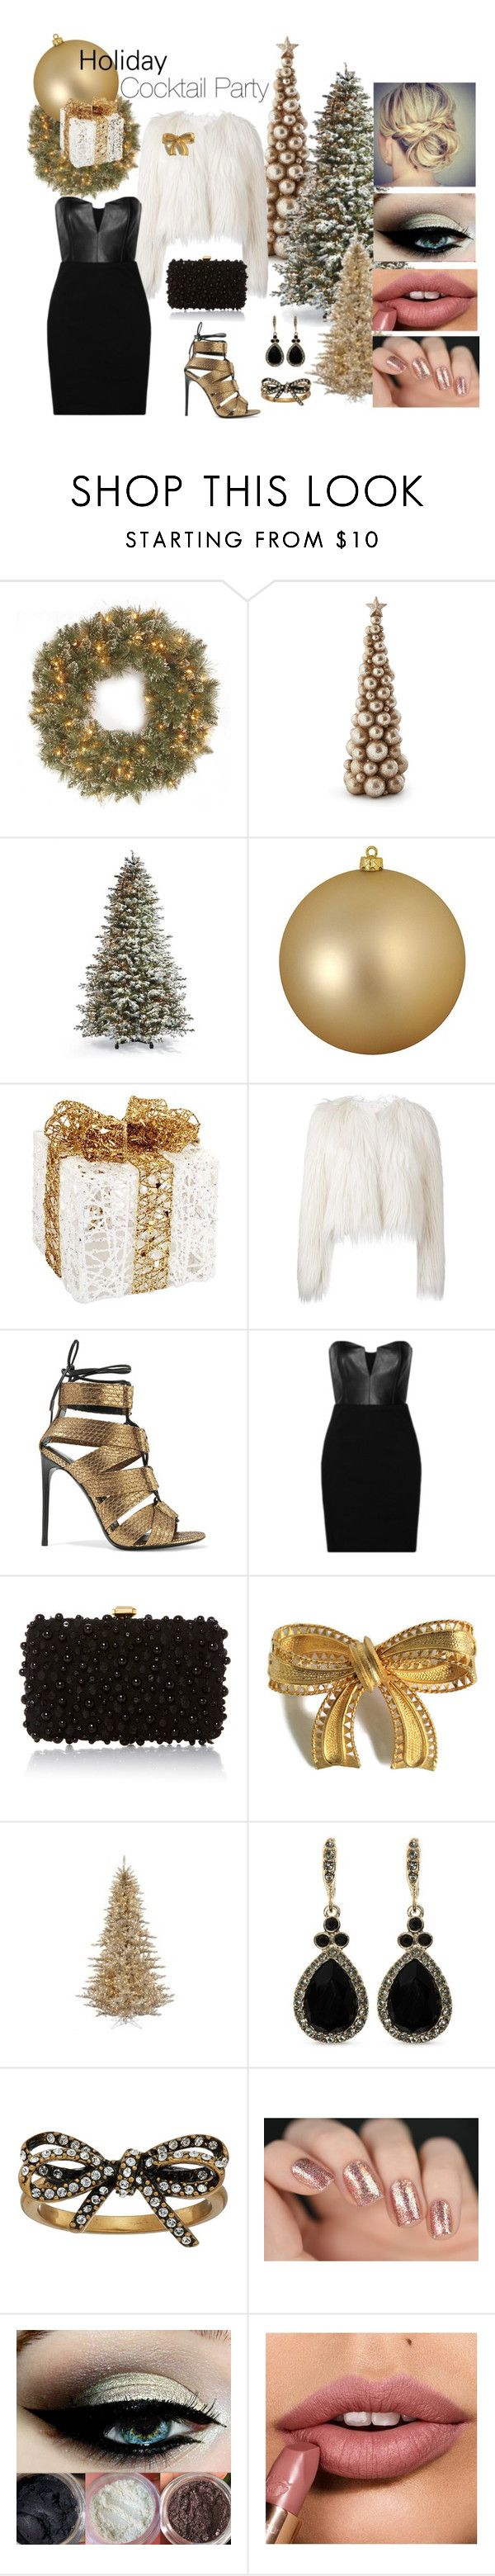 """Holiday Cocktail Party"" by cmrno ❤ liked on Polyvore featuring National Tree Company, Frontgate, Ball, Melrose International, Giamba, Tom Ford, Mason by Michelle Mason, Elie Saab, Givenchy and Marc Jacobs"